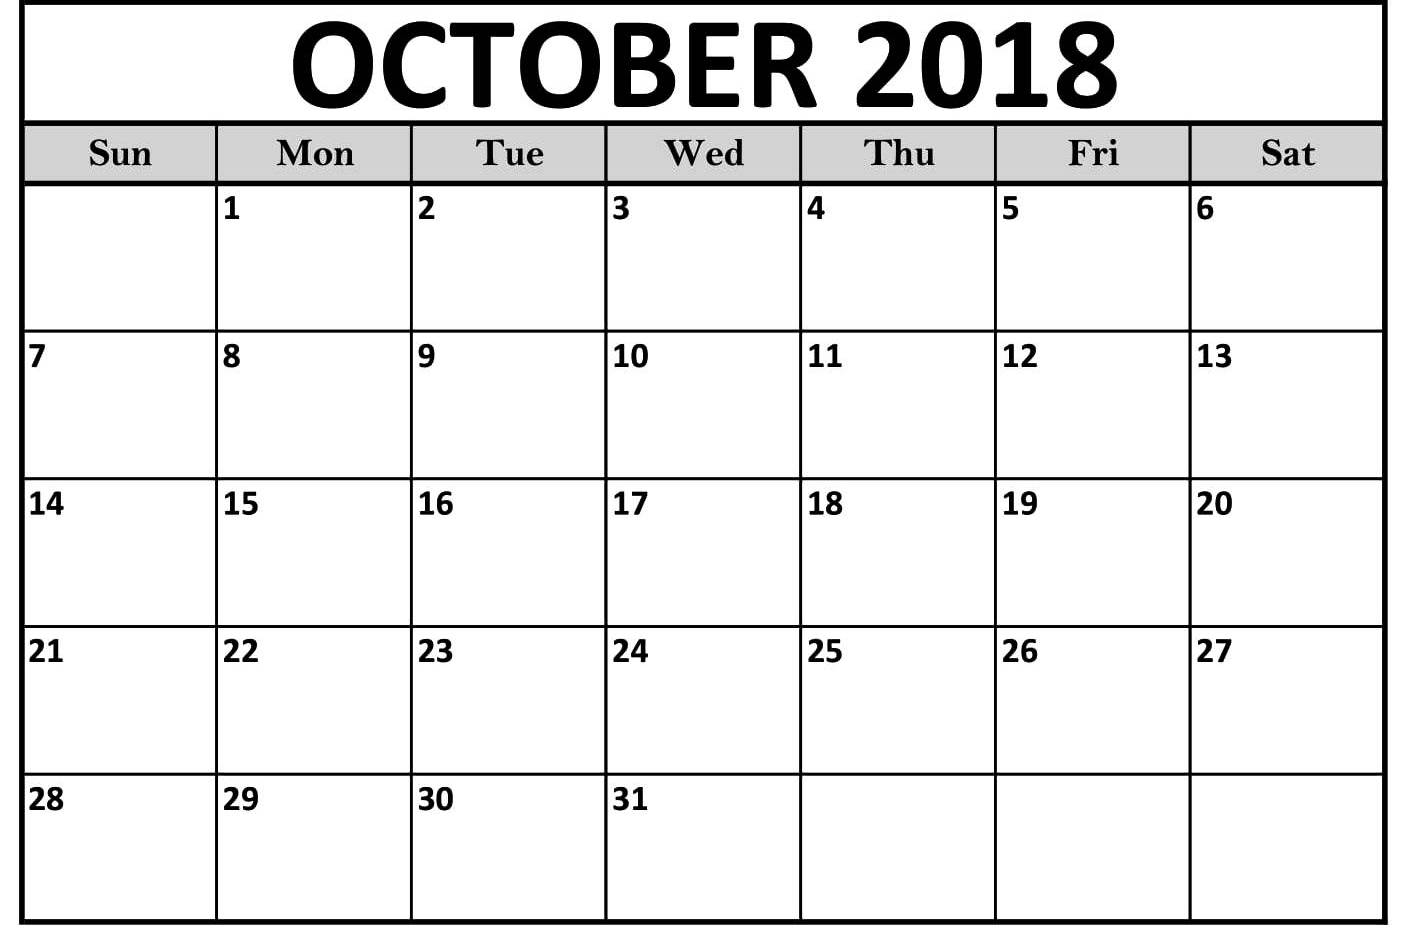 october 2018 calendar with holidays uk canada usa printable October 2018 Calendar Holidays USA erdferdf